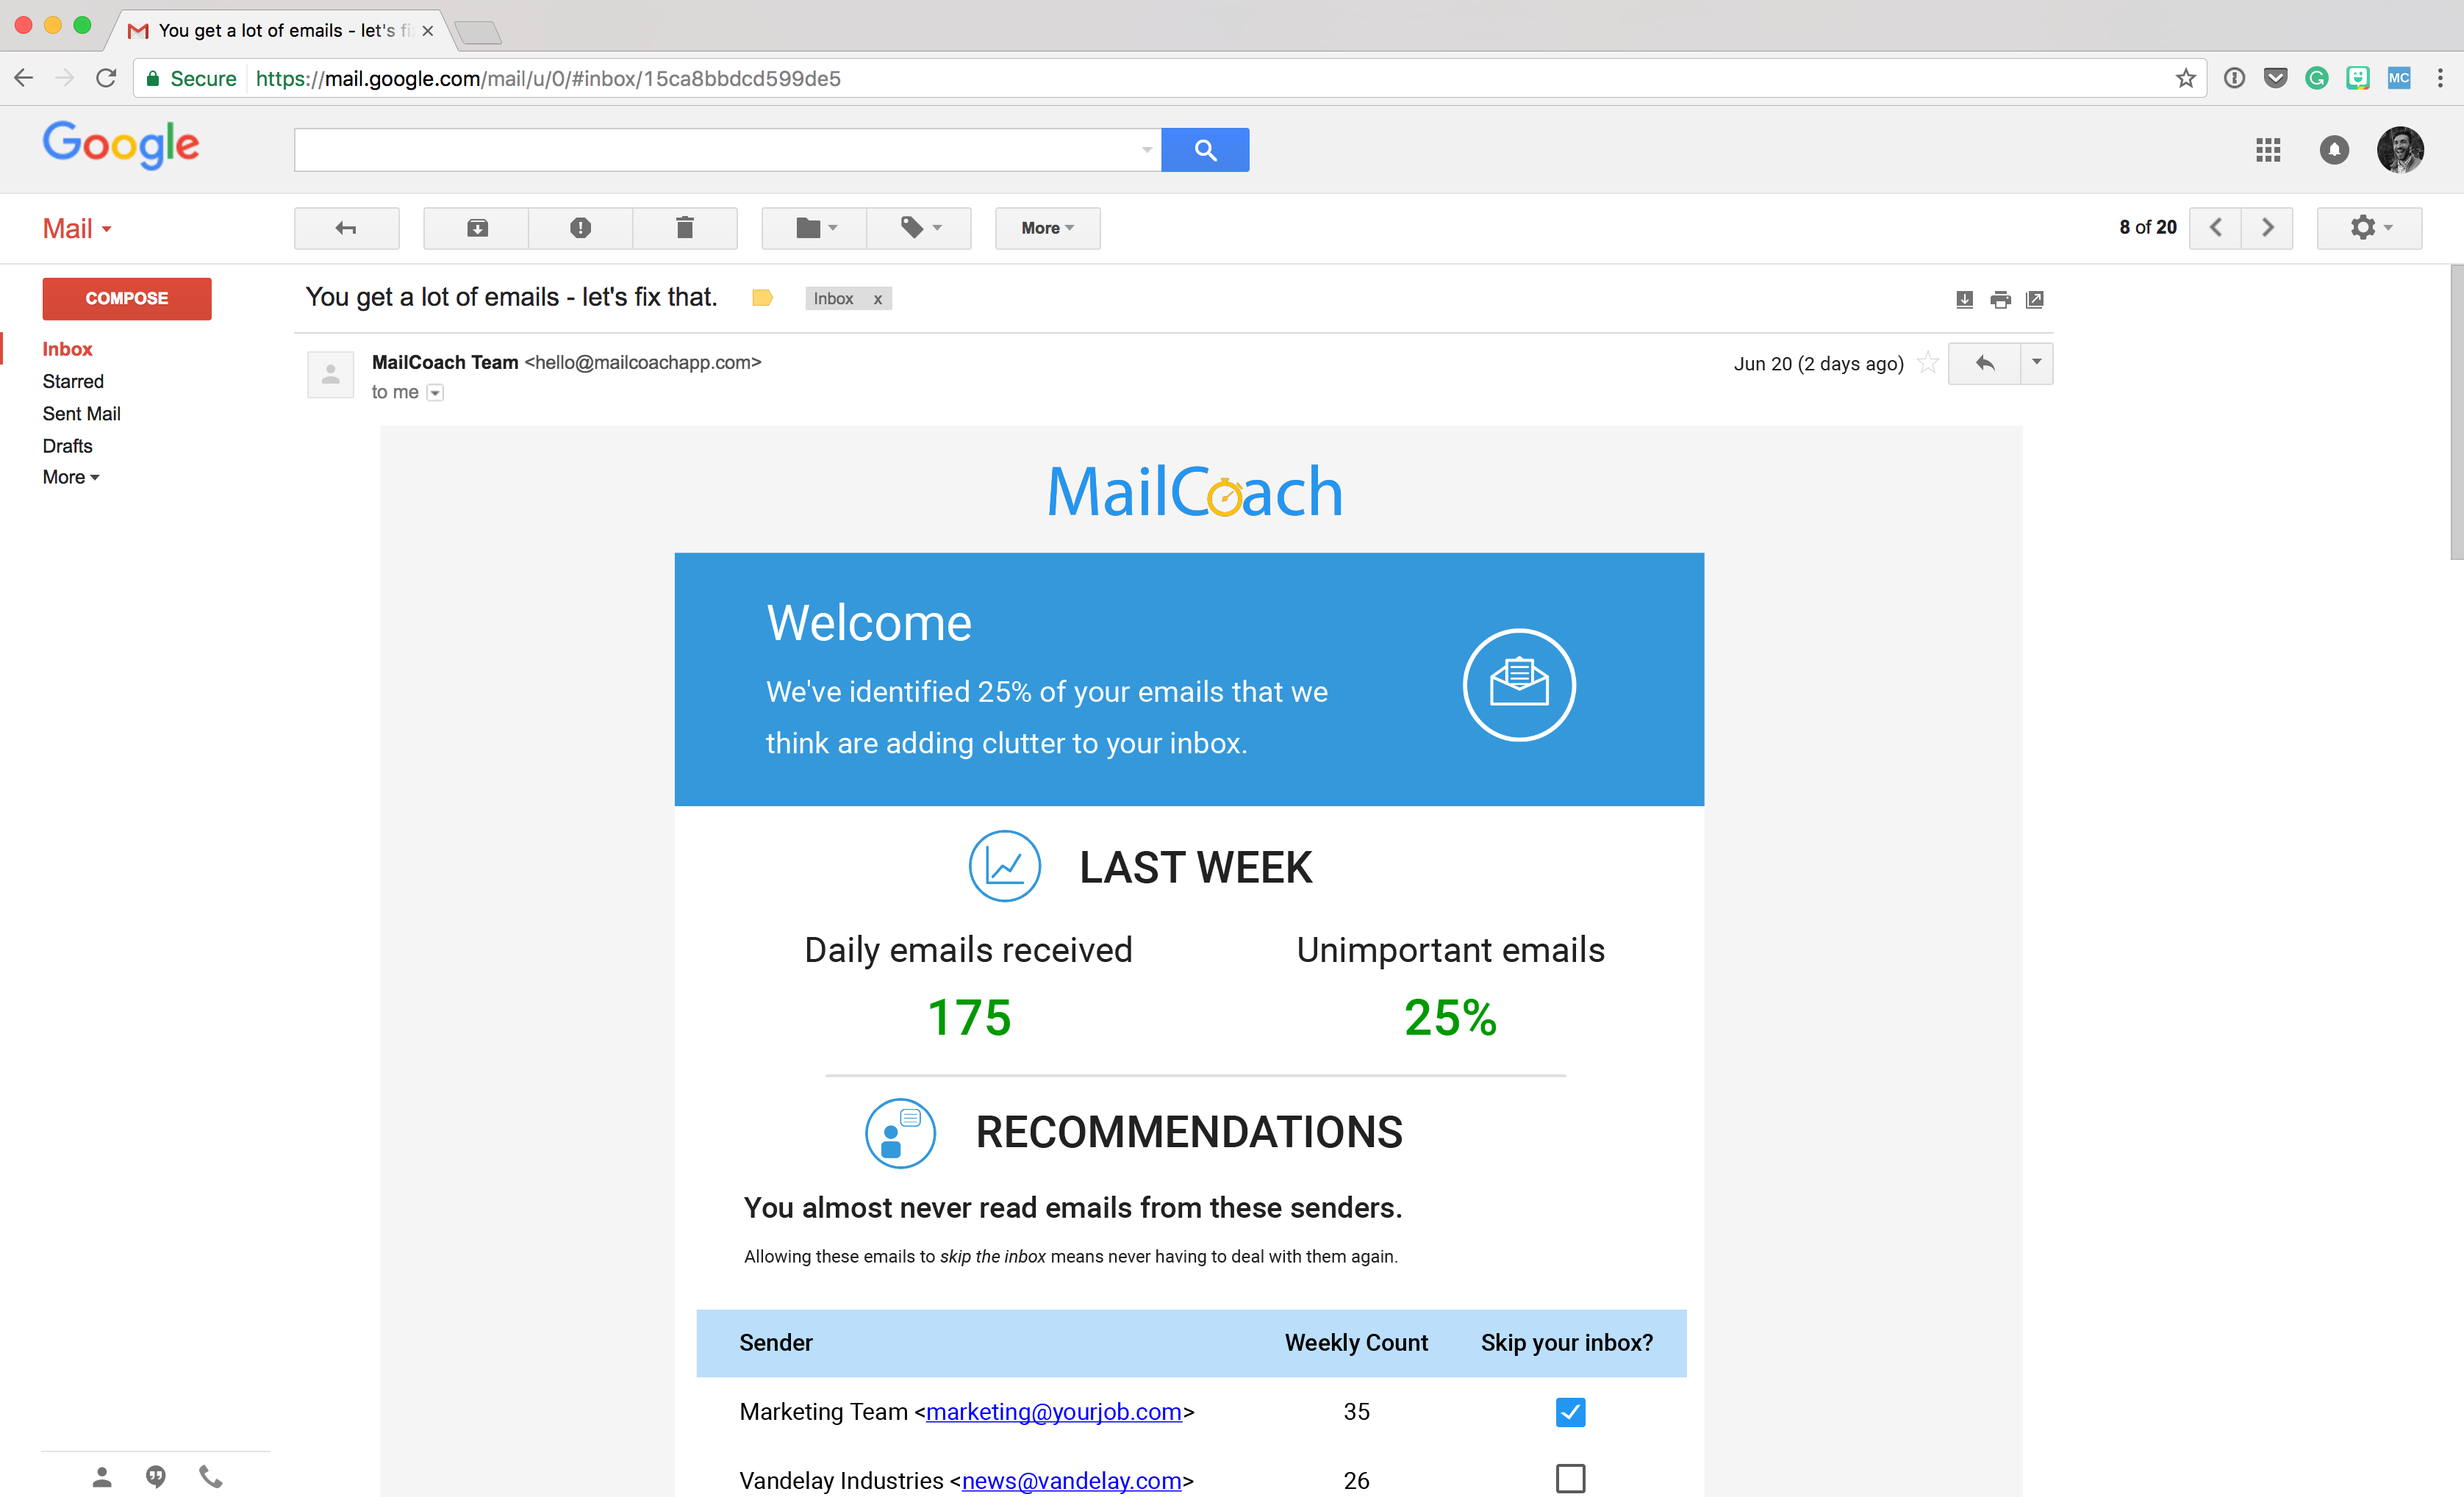 MailCoach Email screenshot